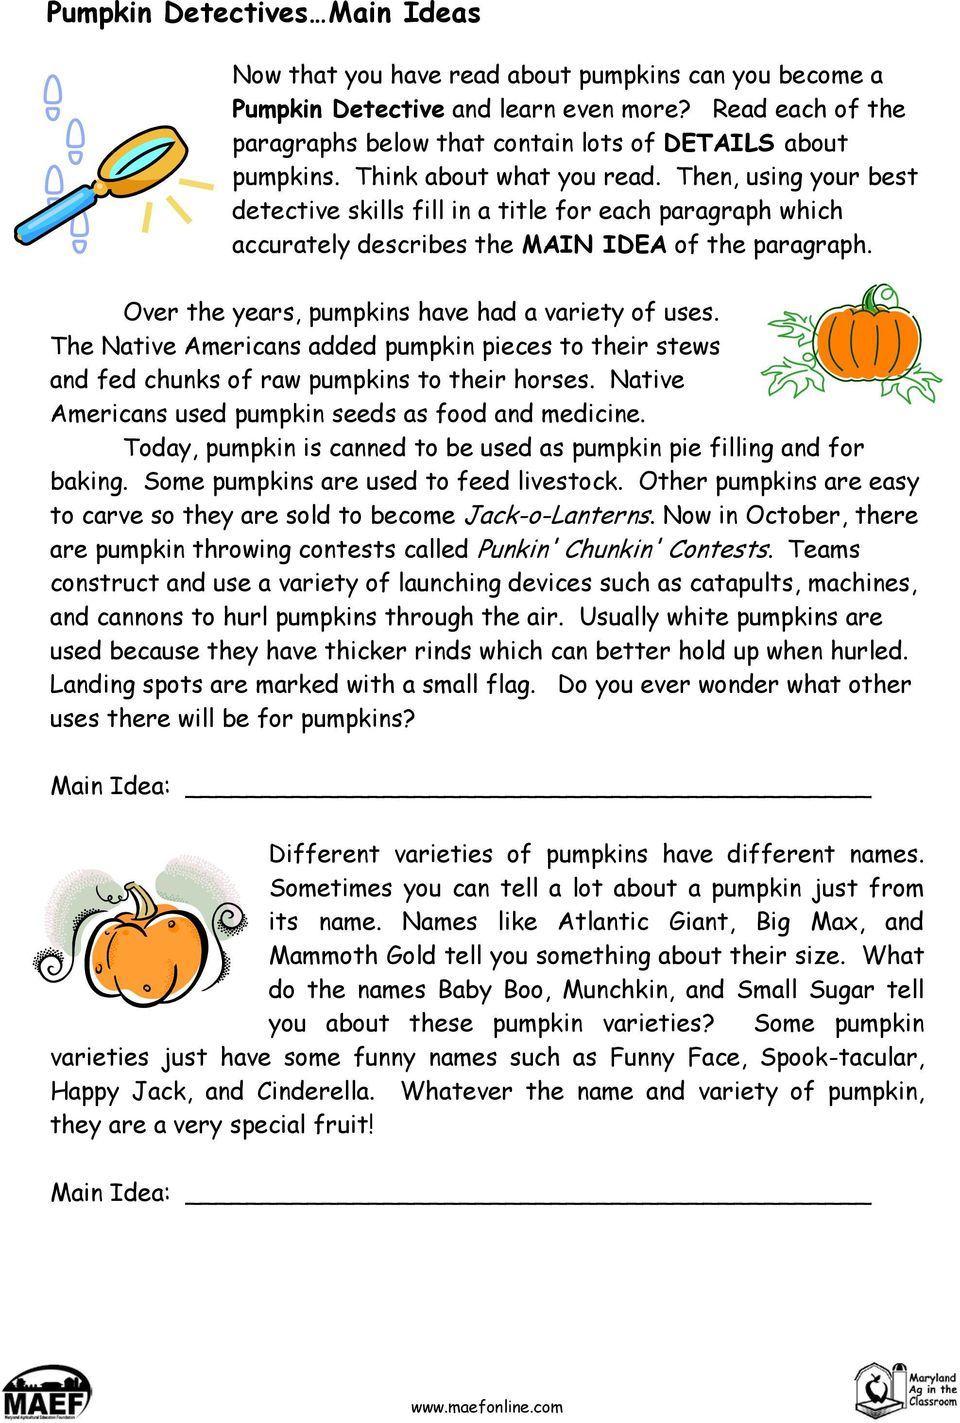 Then, using your best detective skills fill in a title for each paragraph which accurately describes the MAIN IDEA of the paragraph. Over the years, pumpkins have had a variety of uses.